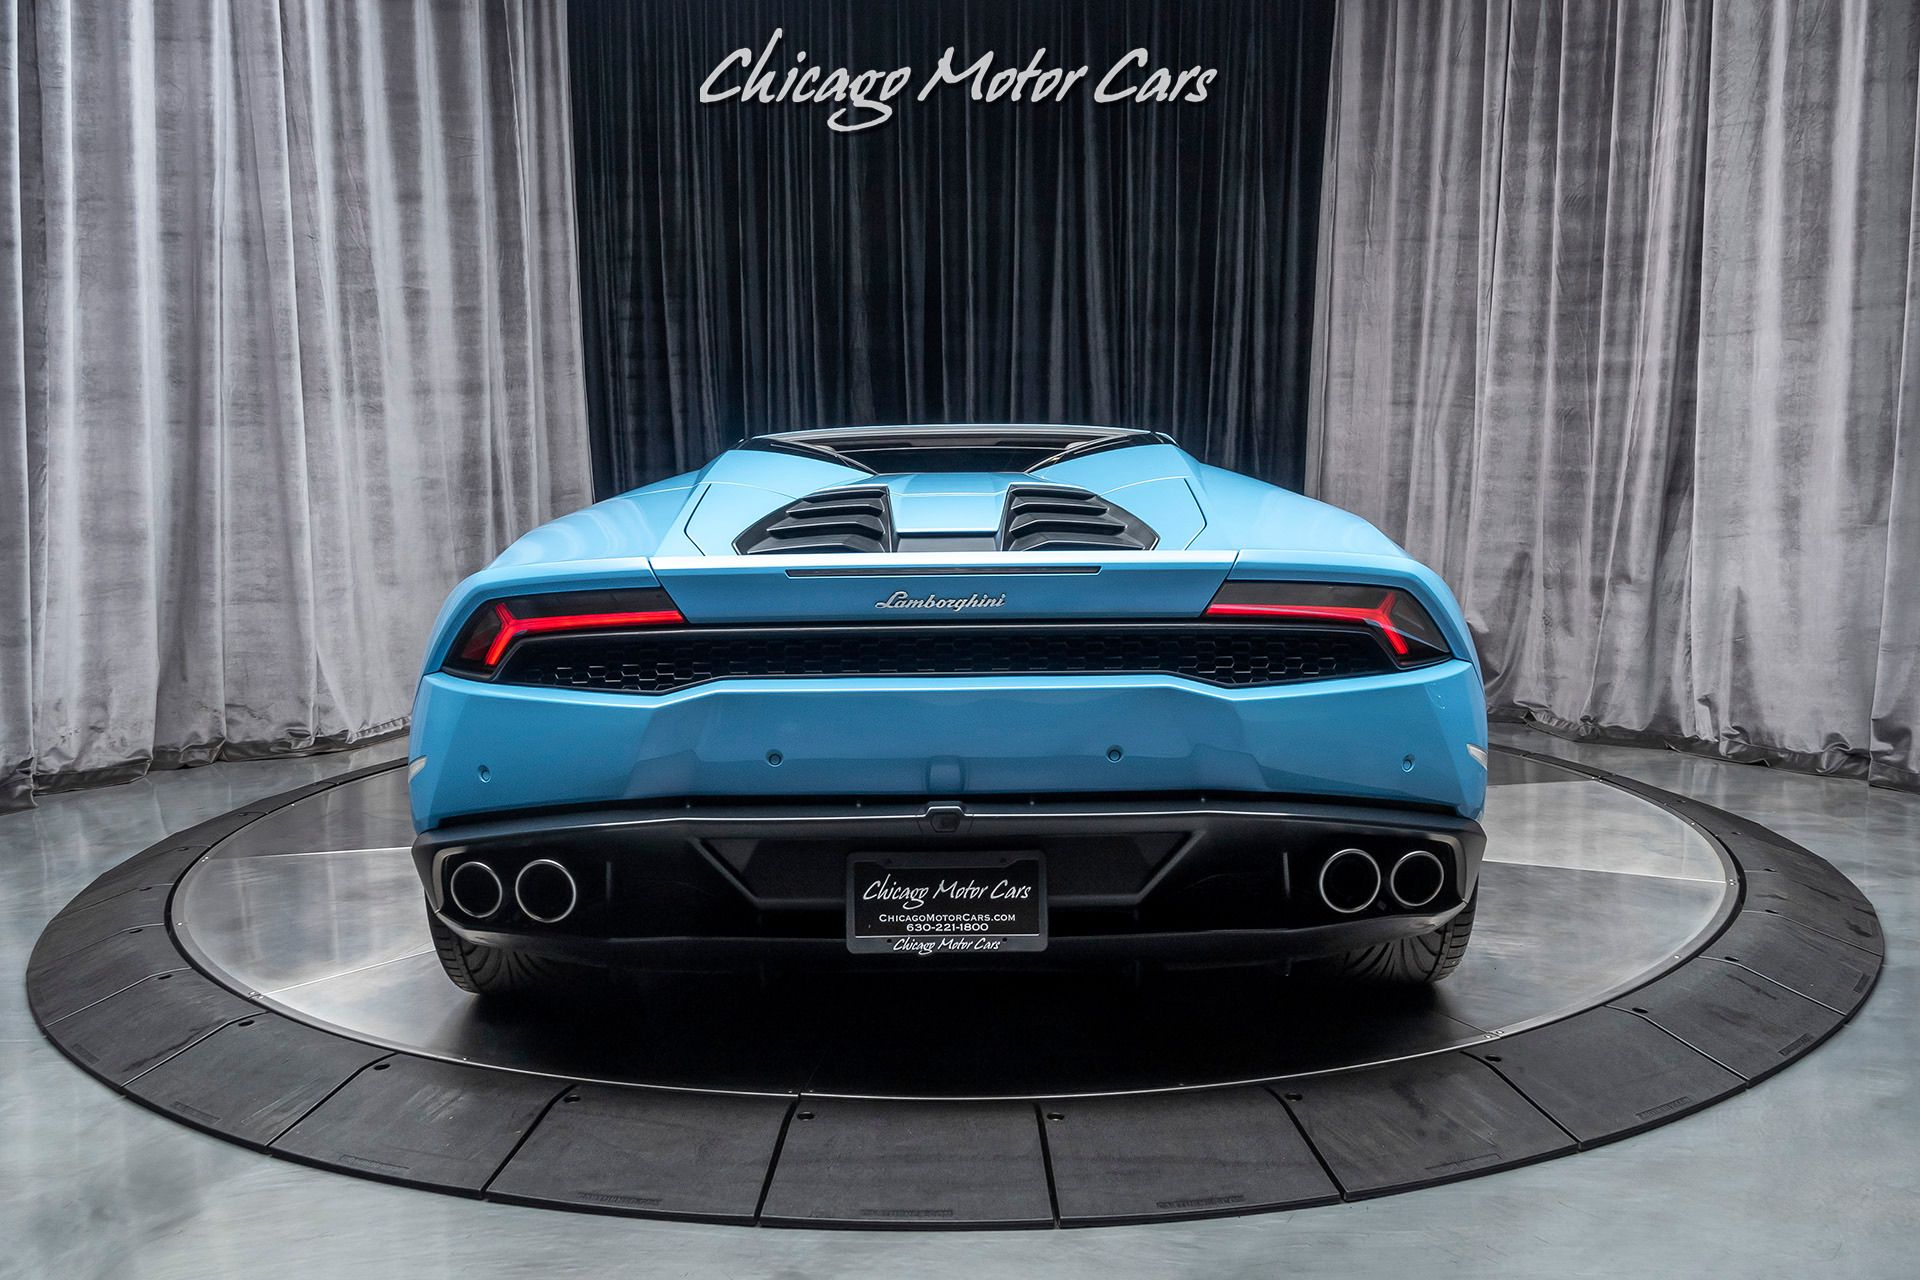 For Sale 2016 Lamborghini Huracan Lp610 4 Spyder Chicago Motor Cars United States For Sale On Luxurypulse Lamborghini Huracan Lamborghini Motor Car